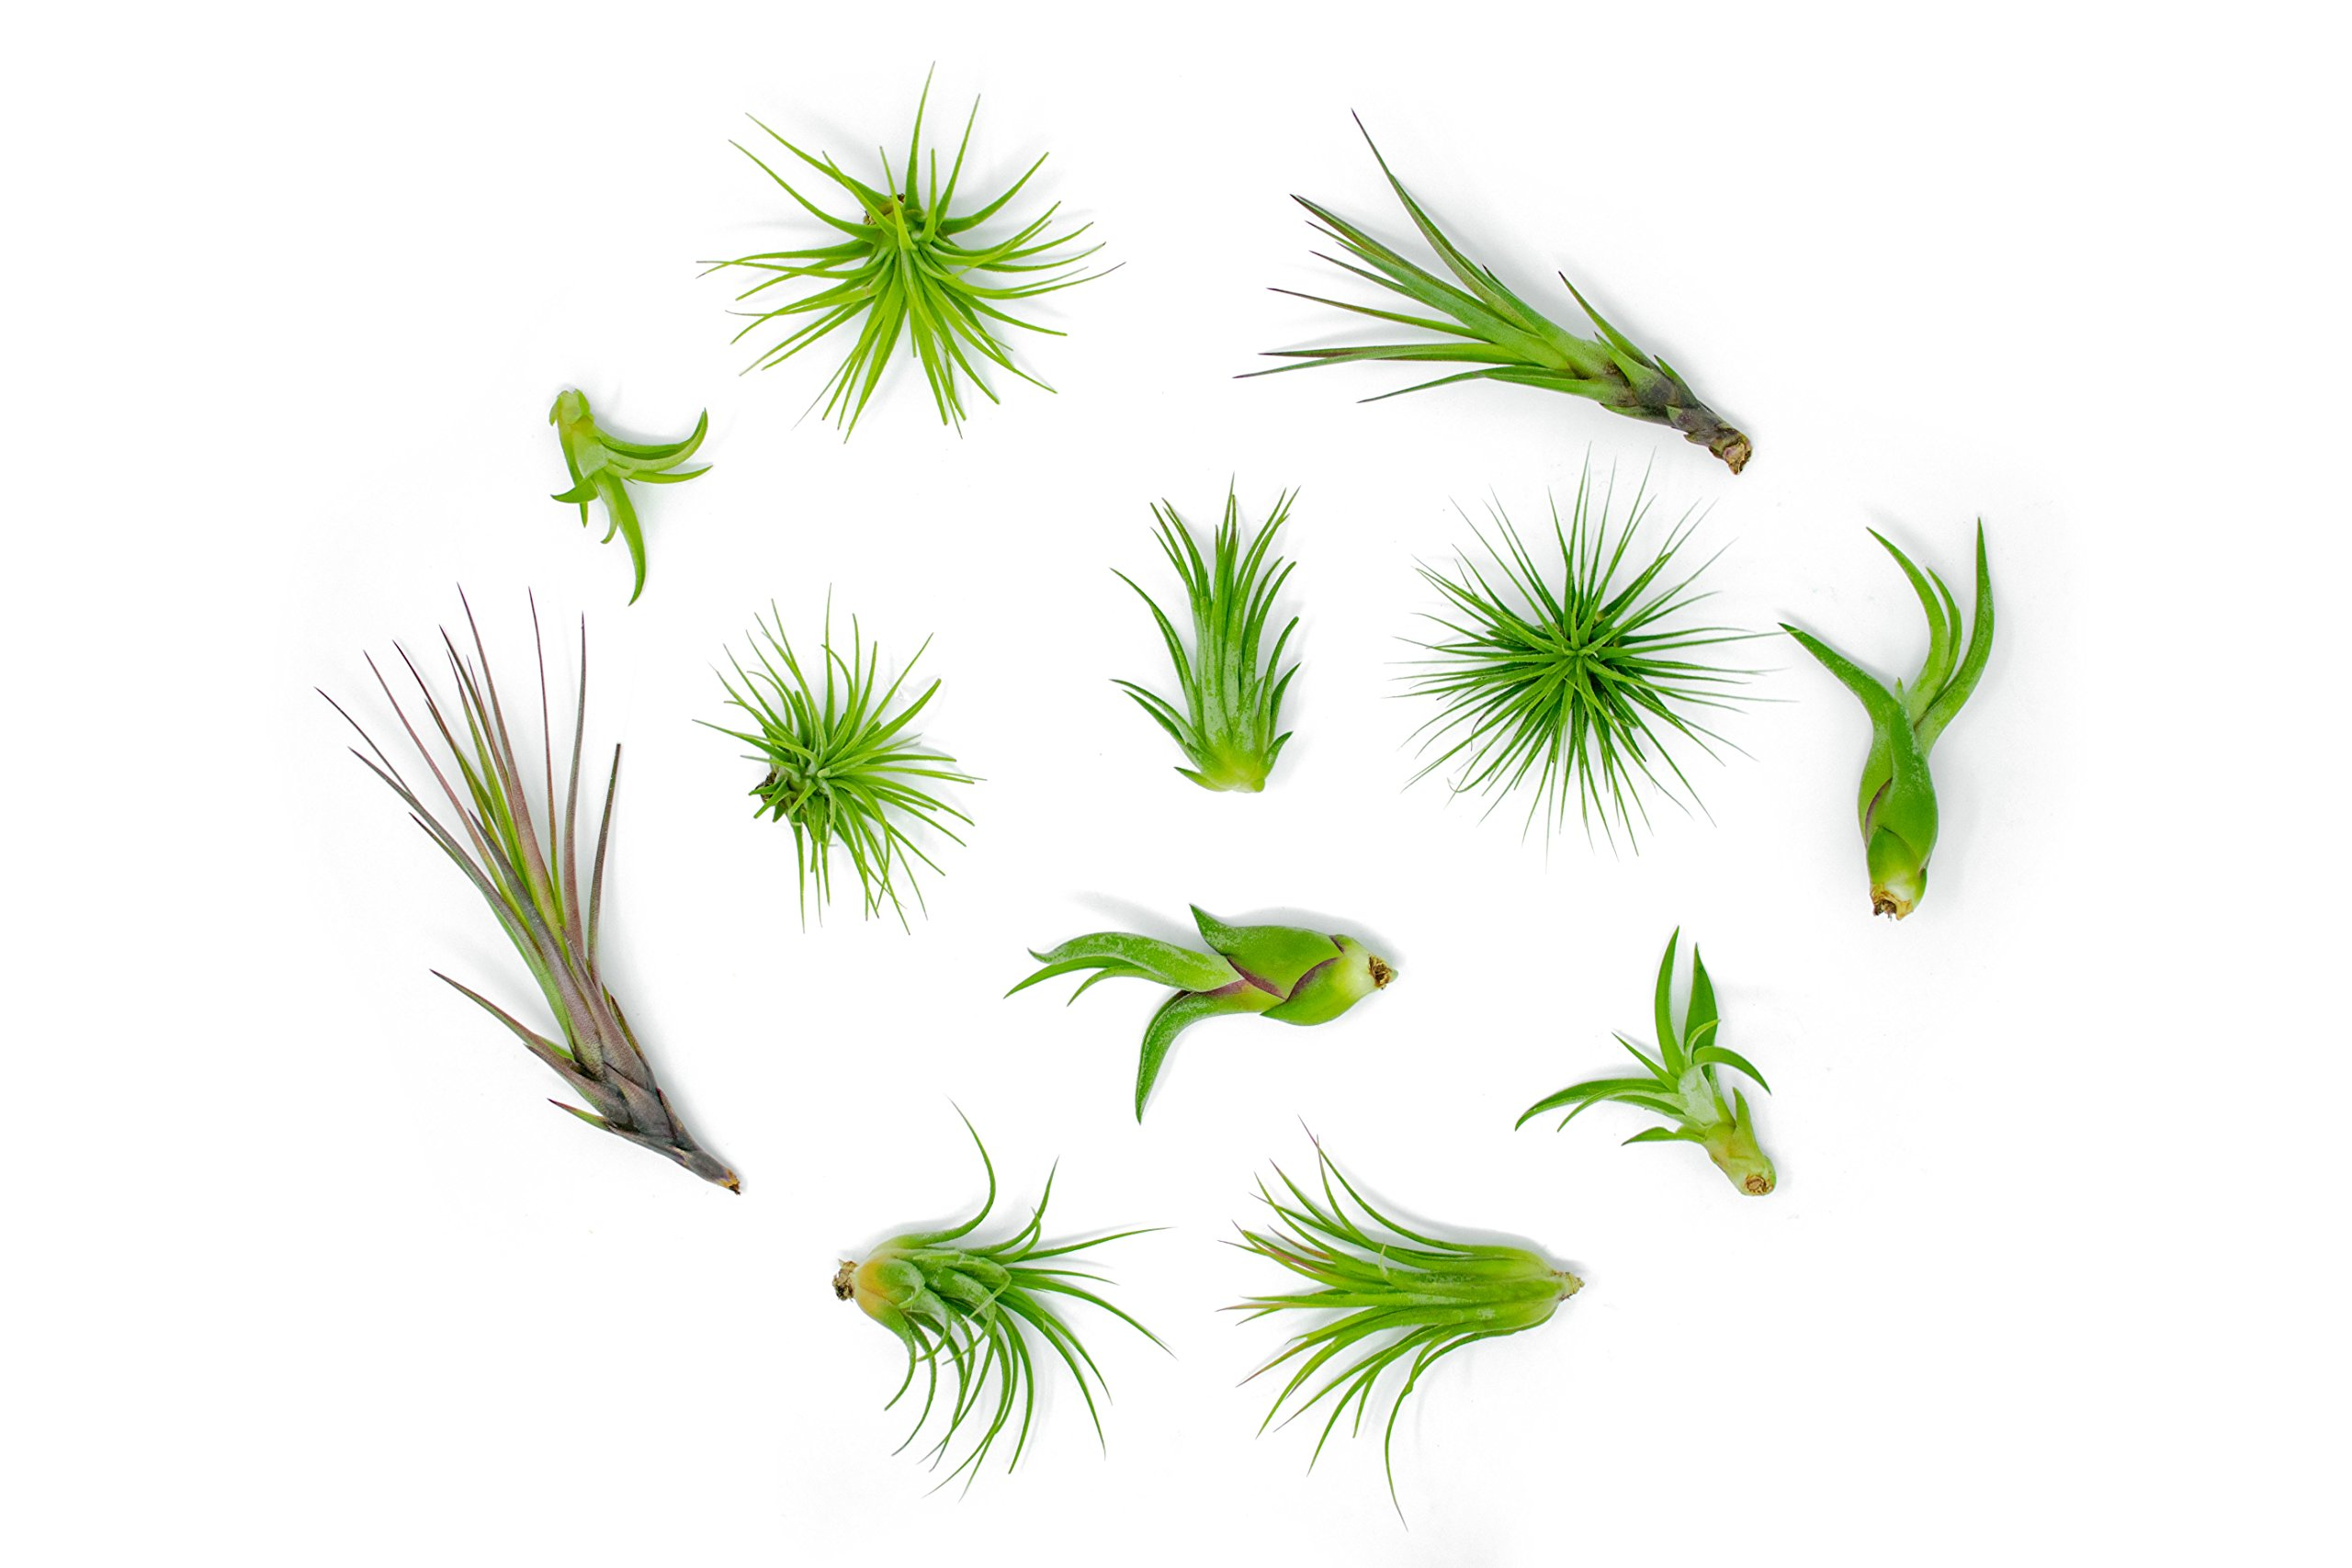 12 Air Plant Variety Pack - Small Tillandsia Terrarium Kit - Assorted Species of Live Tillandsia Tropical House Plants for Sale, 2 to 5 Inches Each - Air Plants for Indoor Home Decor by Plants for Pets